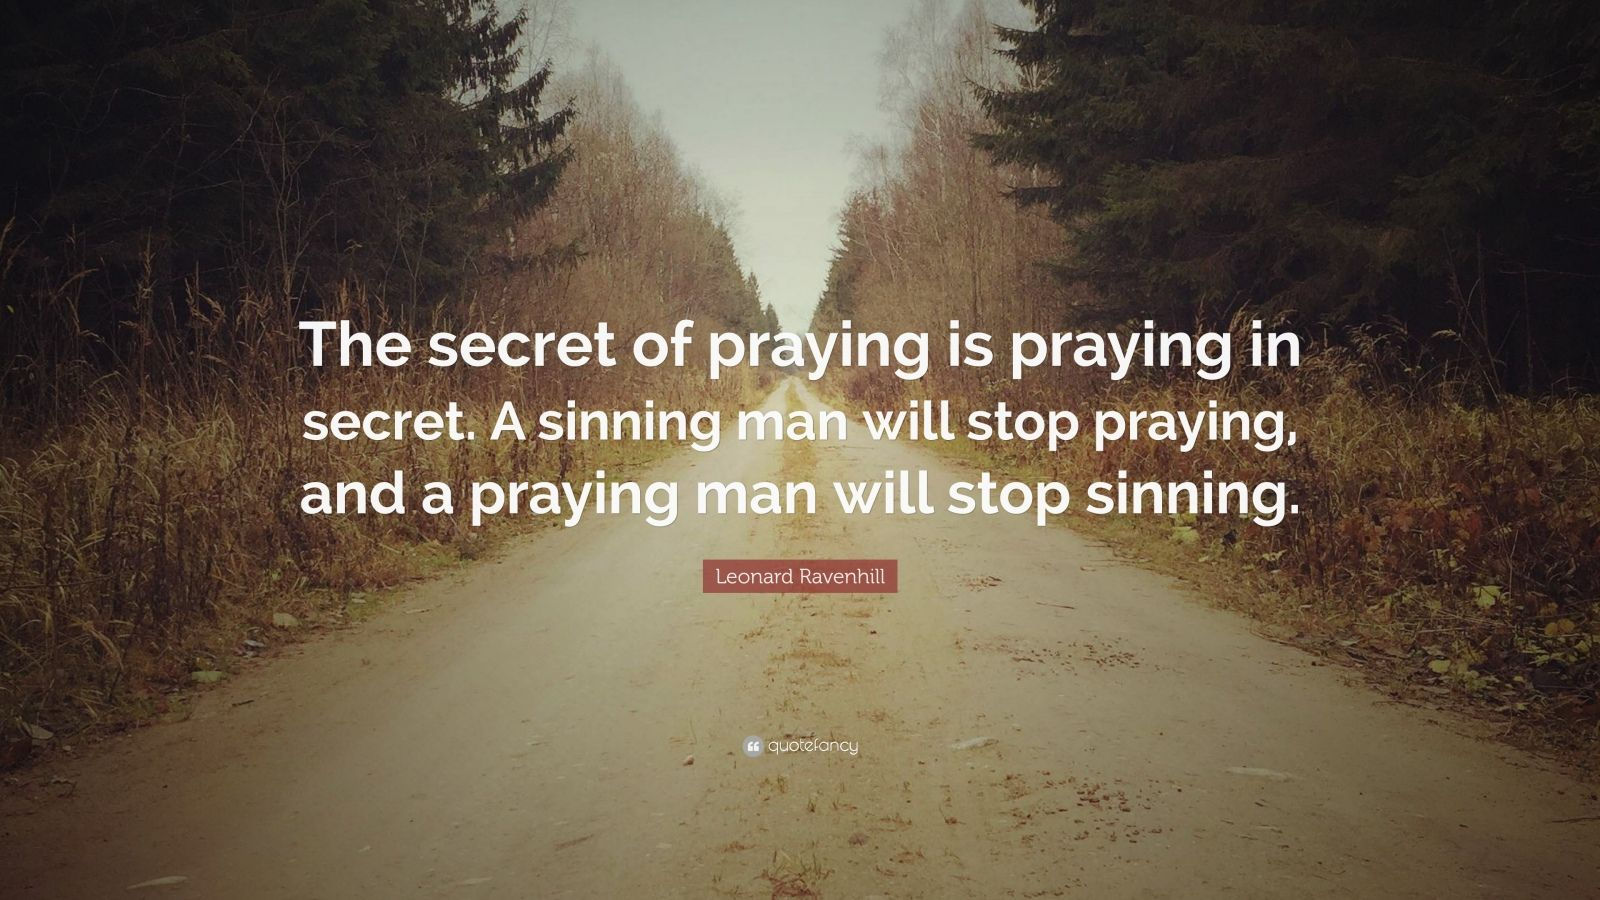 """Leonard Ravenhill Quote: """"The secret of praying is praying in secret. A sinning man will stop praying, and a praying man will stop sinning."""""""